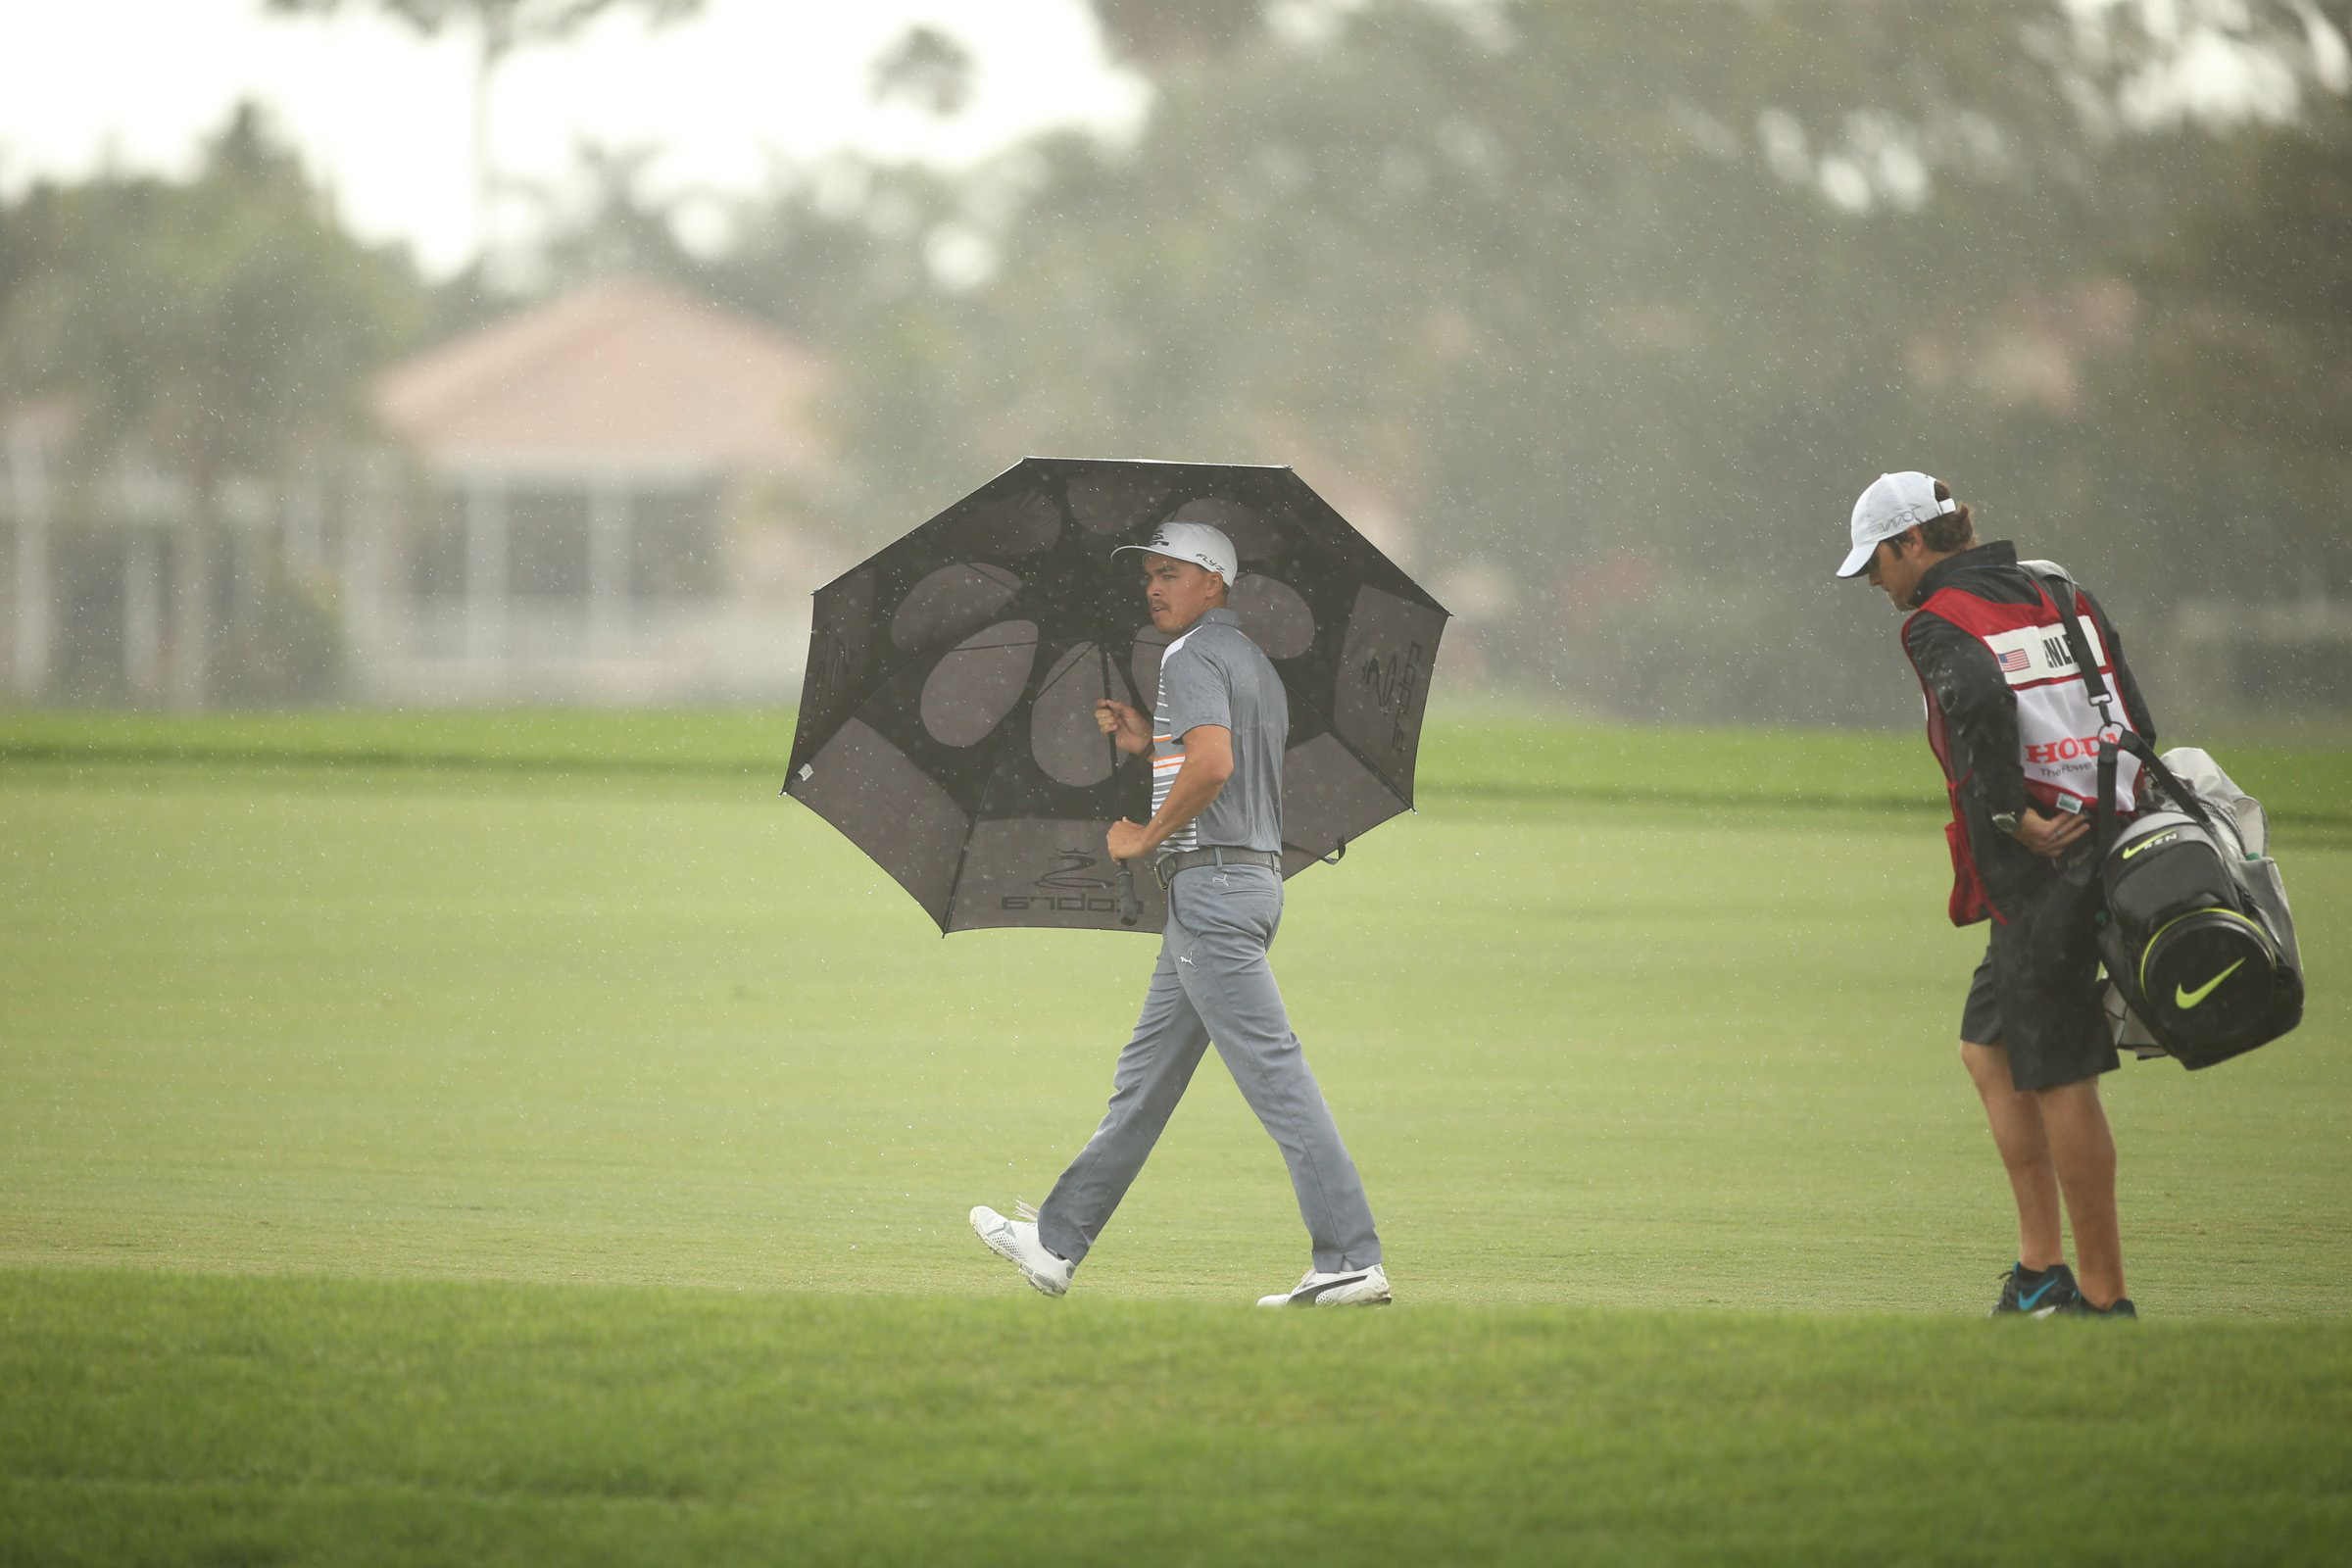 Rickie Fowler didn't look bothered by the rain. He proved his bad-weather mettle at the 2011 British Open.